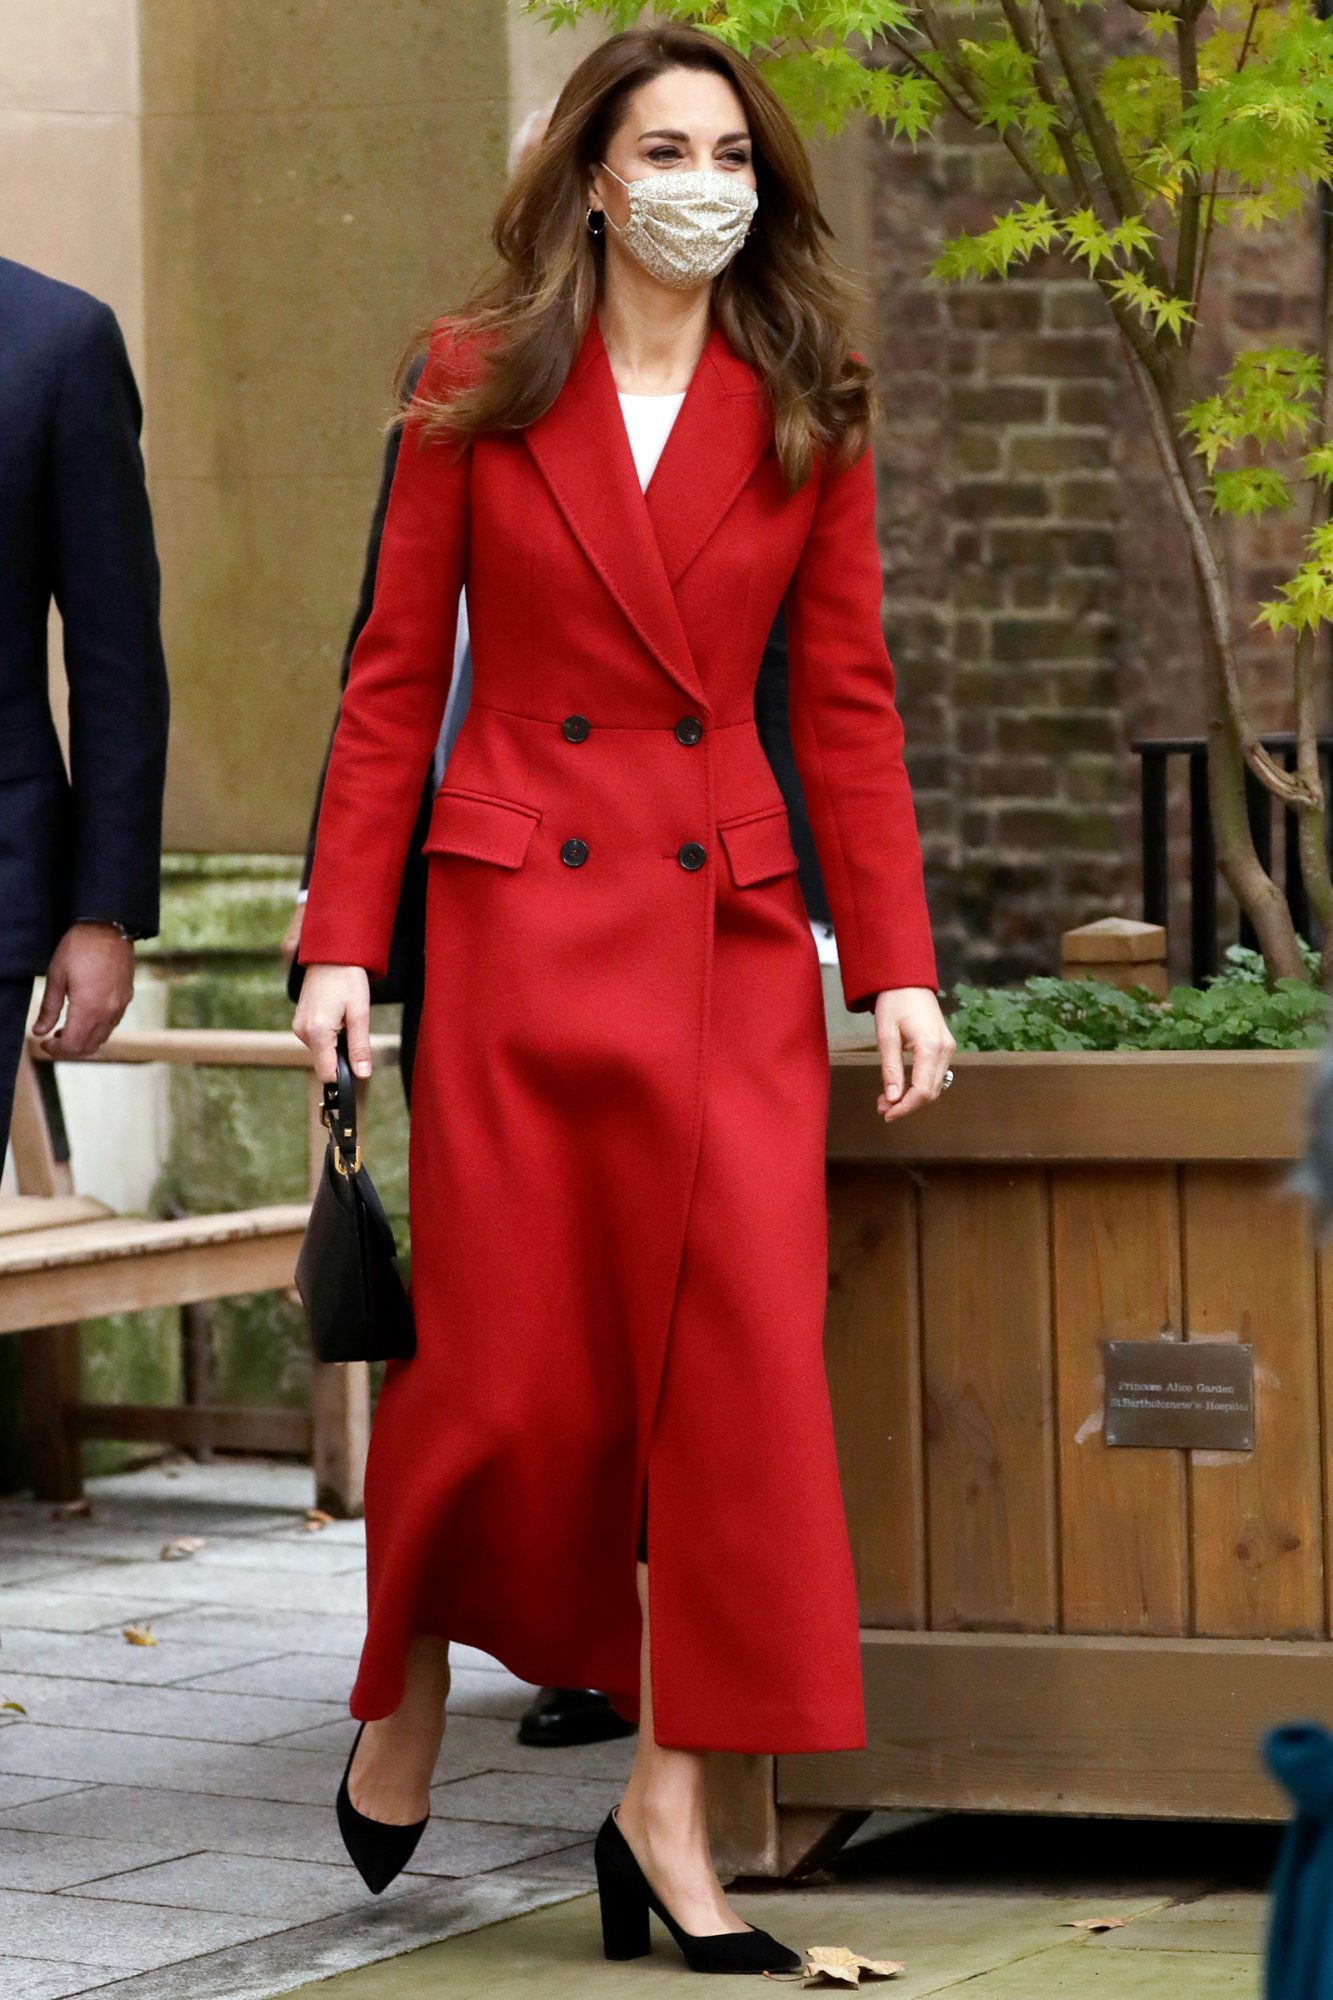 Catherine, Duchess of Cambridge arrives at St. Bartholomew's Hospital to attend an event to mark the launch of the nationwide 'Hold Still' community photography project on October 20, 2020